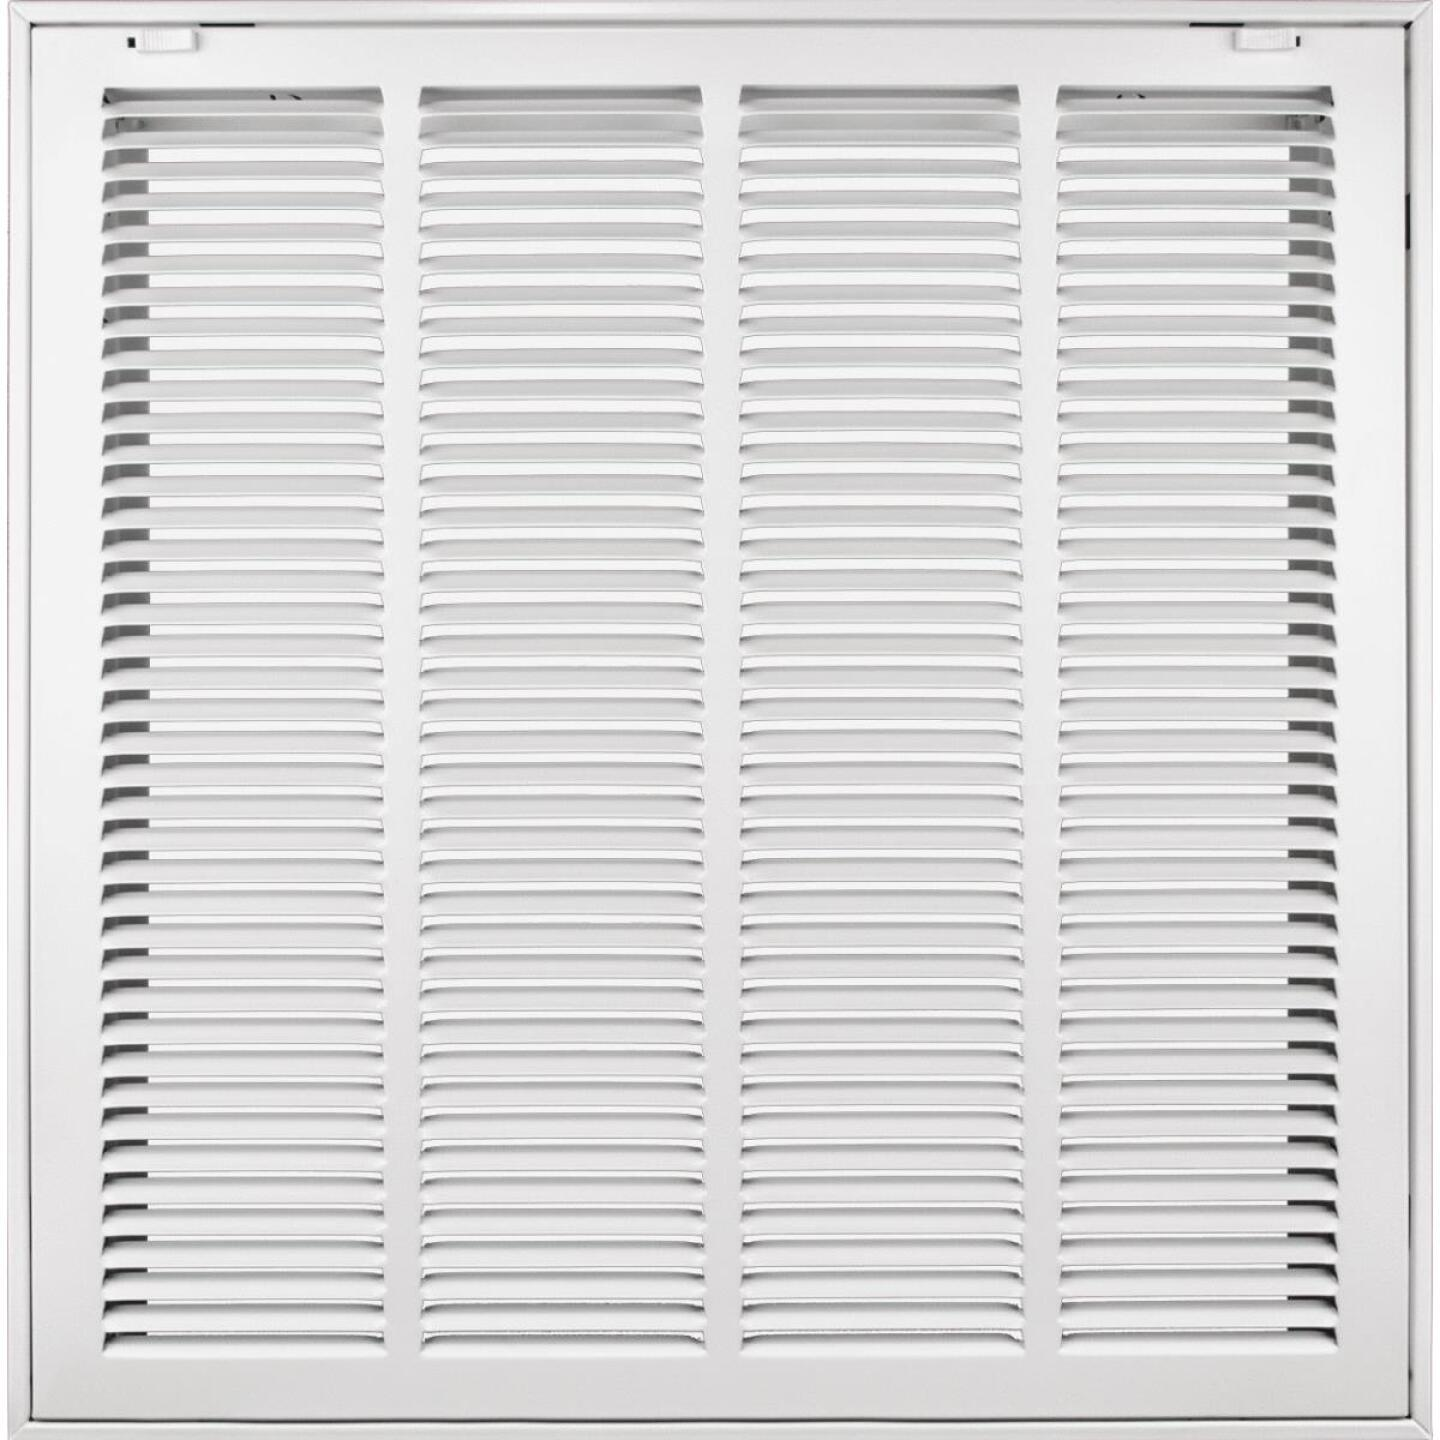 Accord 20 In. x 20 In. White Filter Grille Image 1